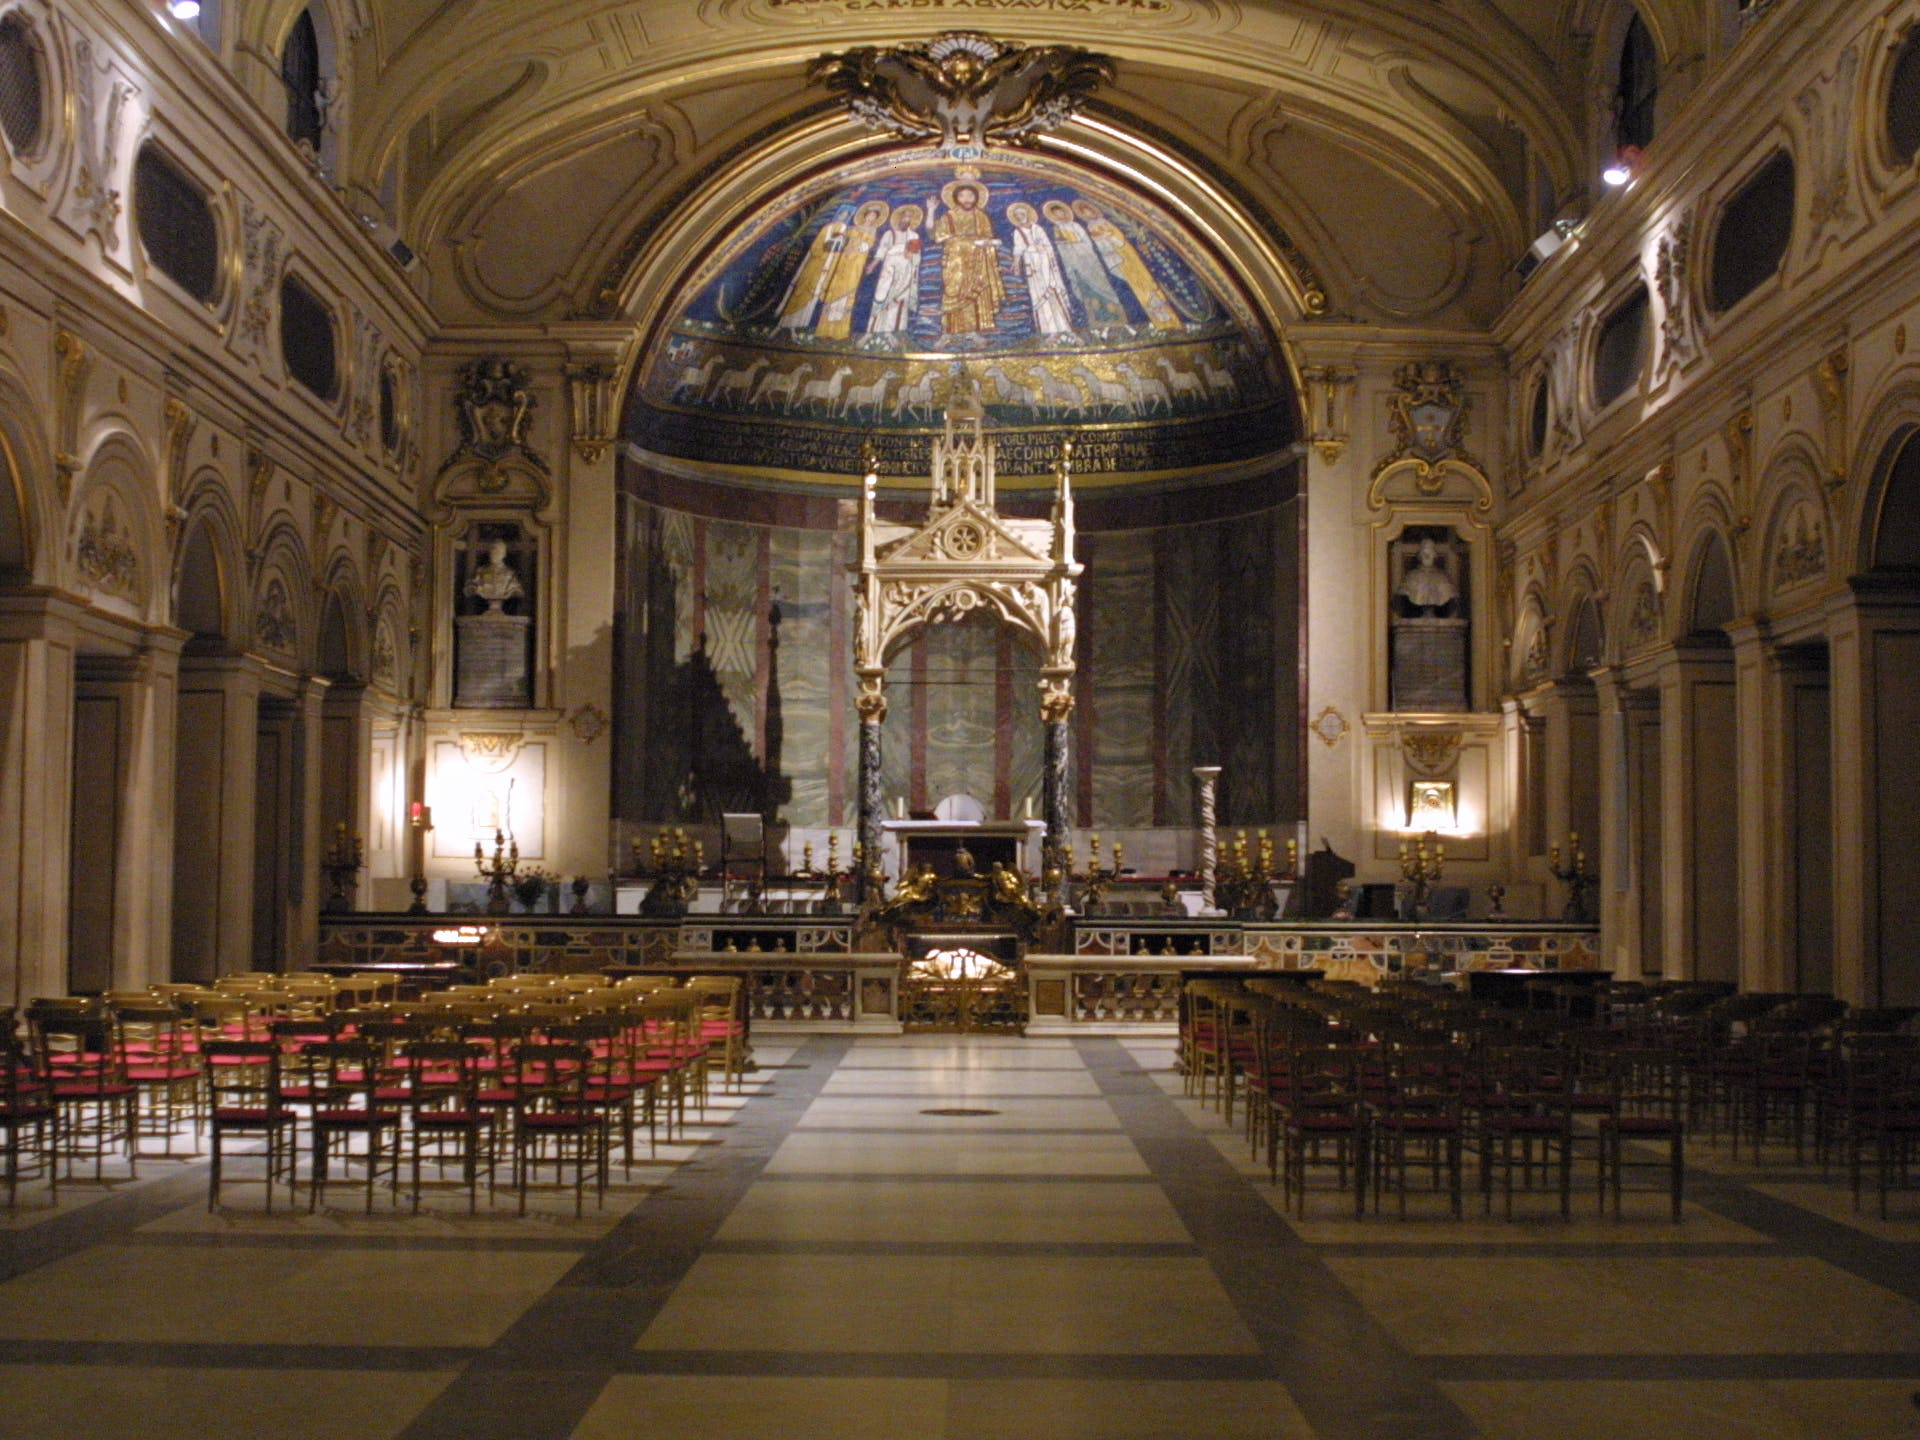 Best Tours in Rome - Jewish ghetto and trastevere - 3